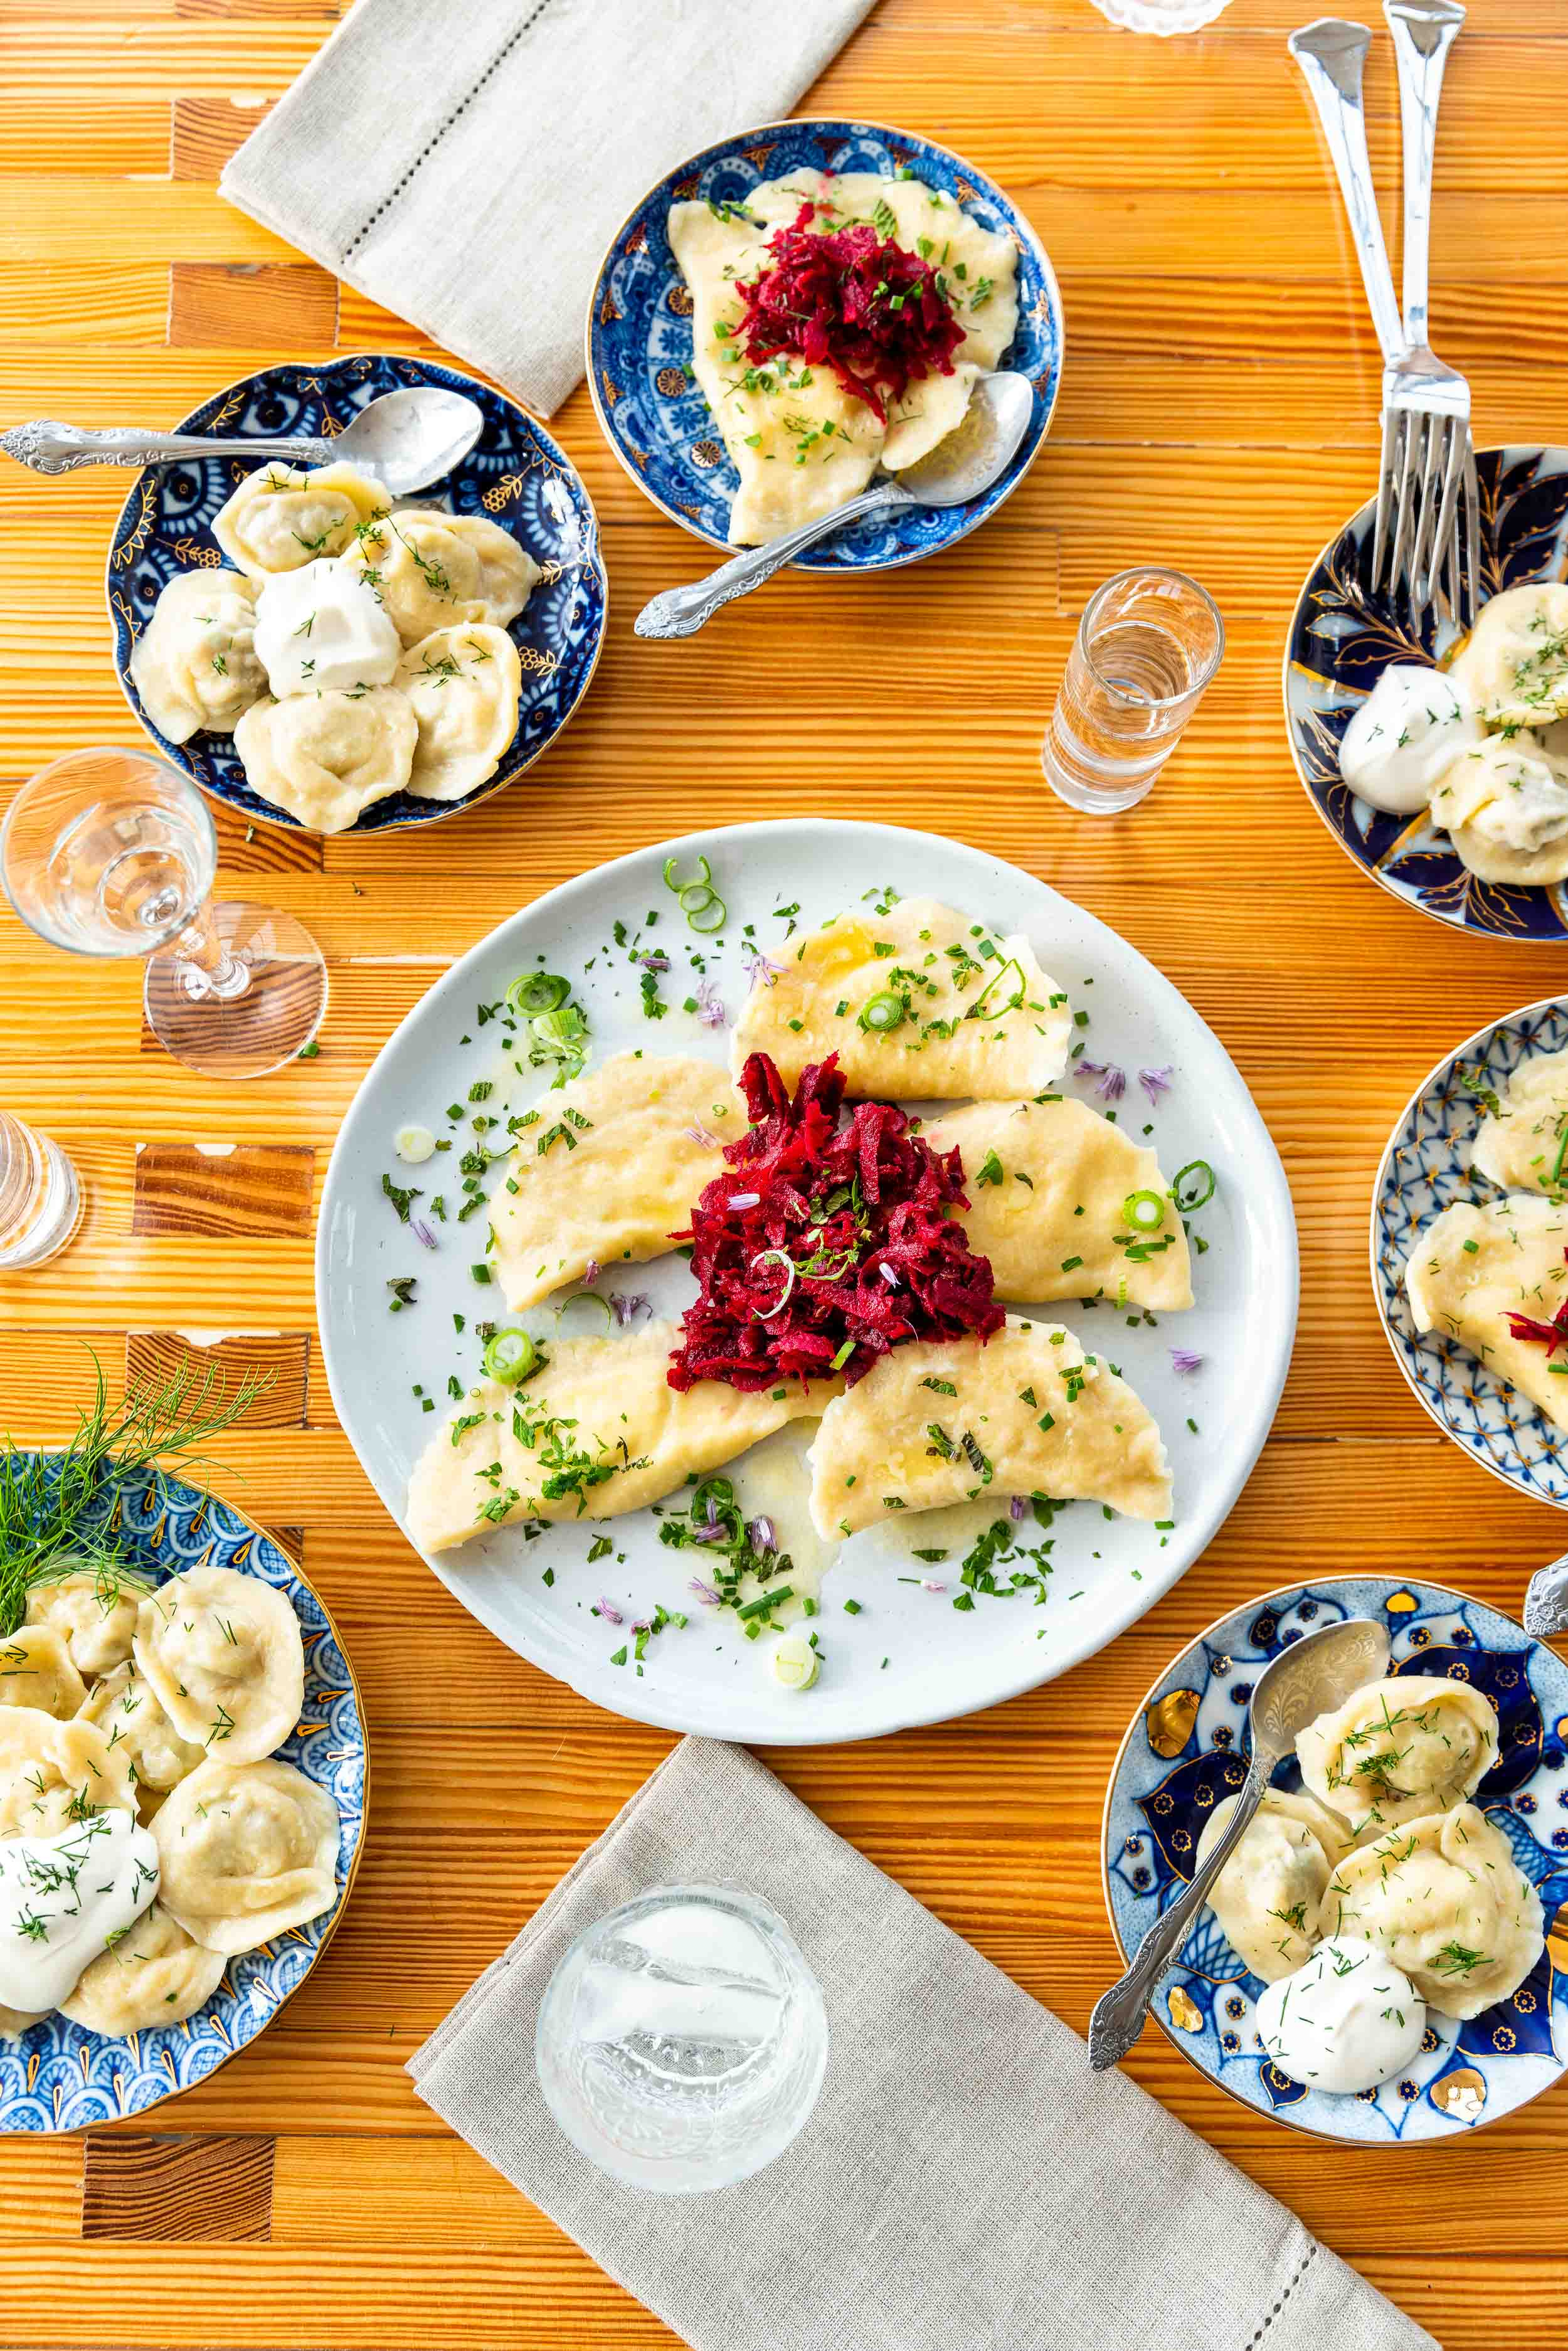 Vodka and dumplings for Edible Marin and Wine Country